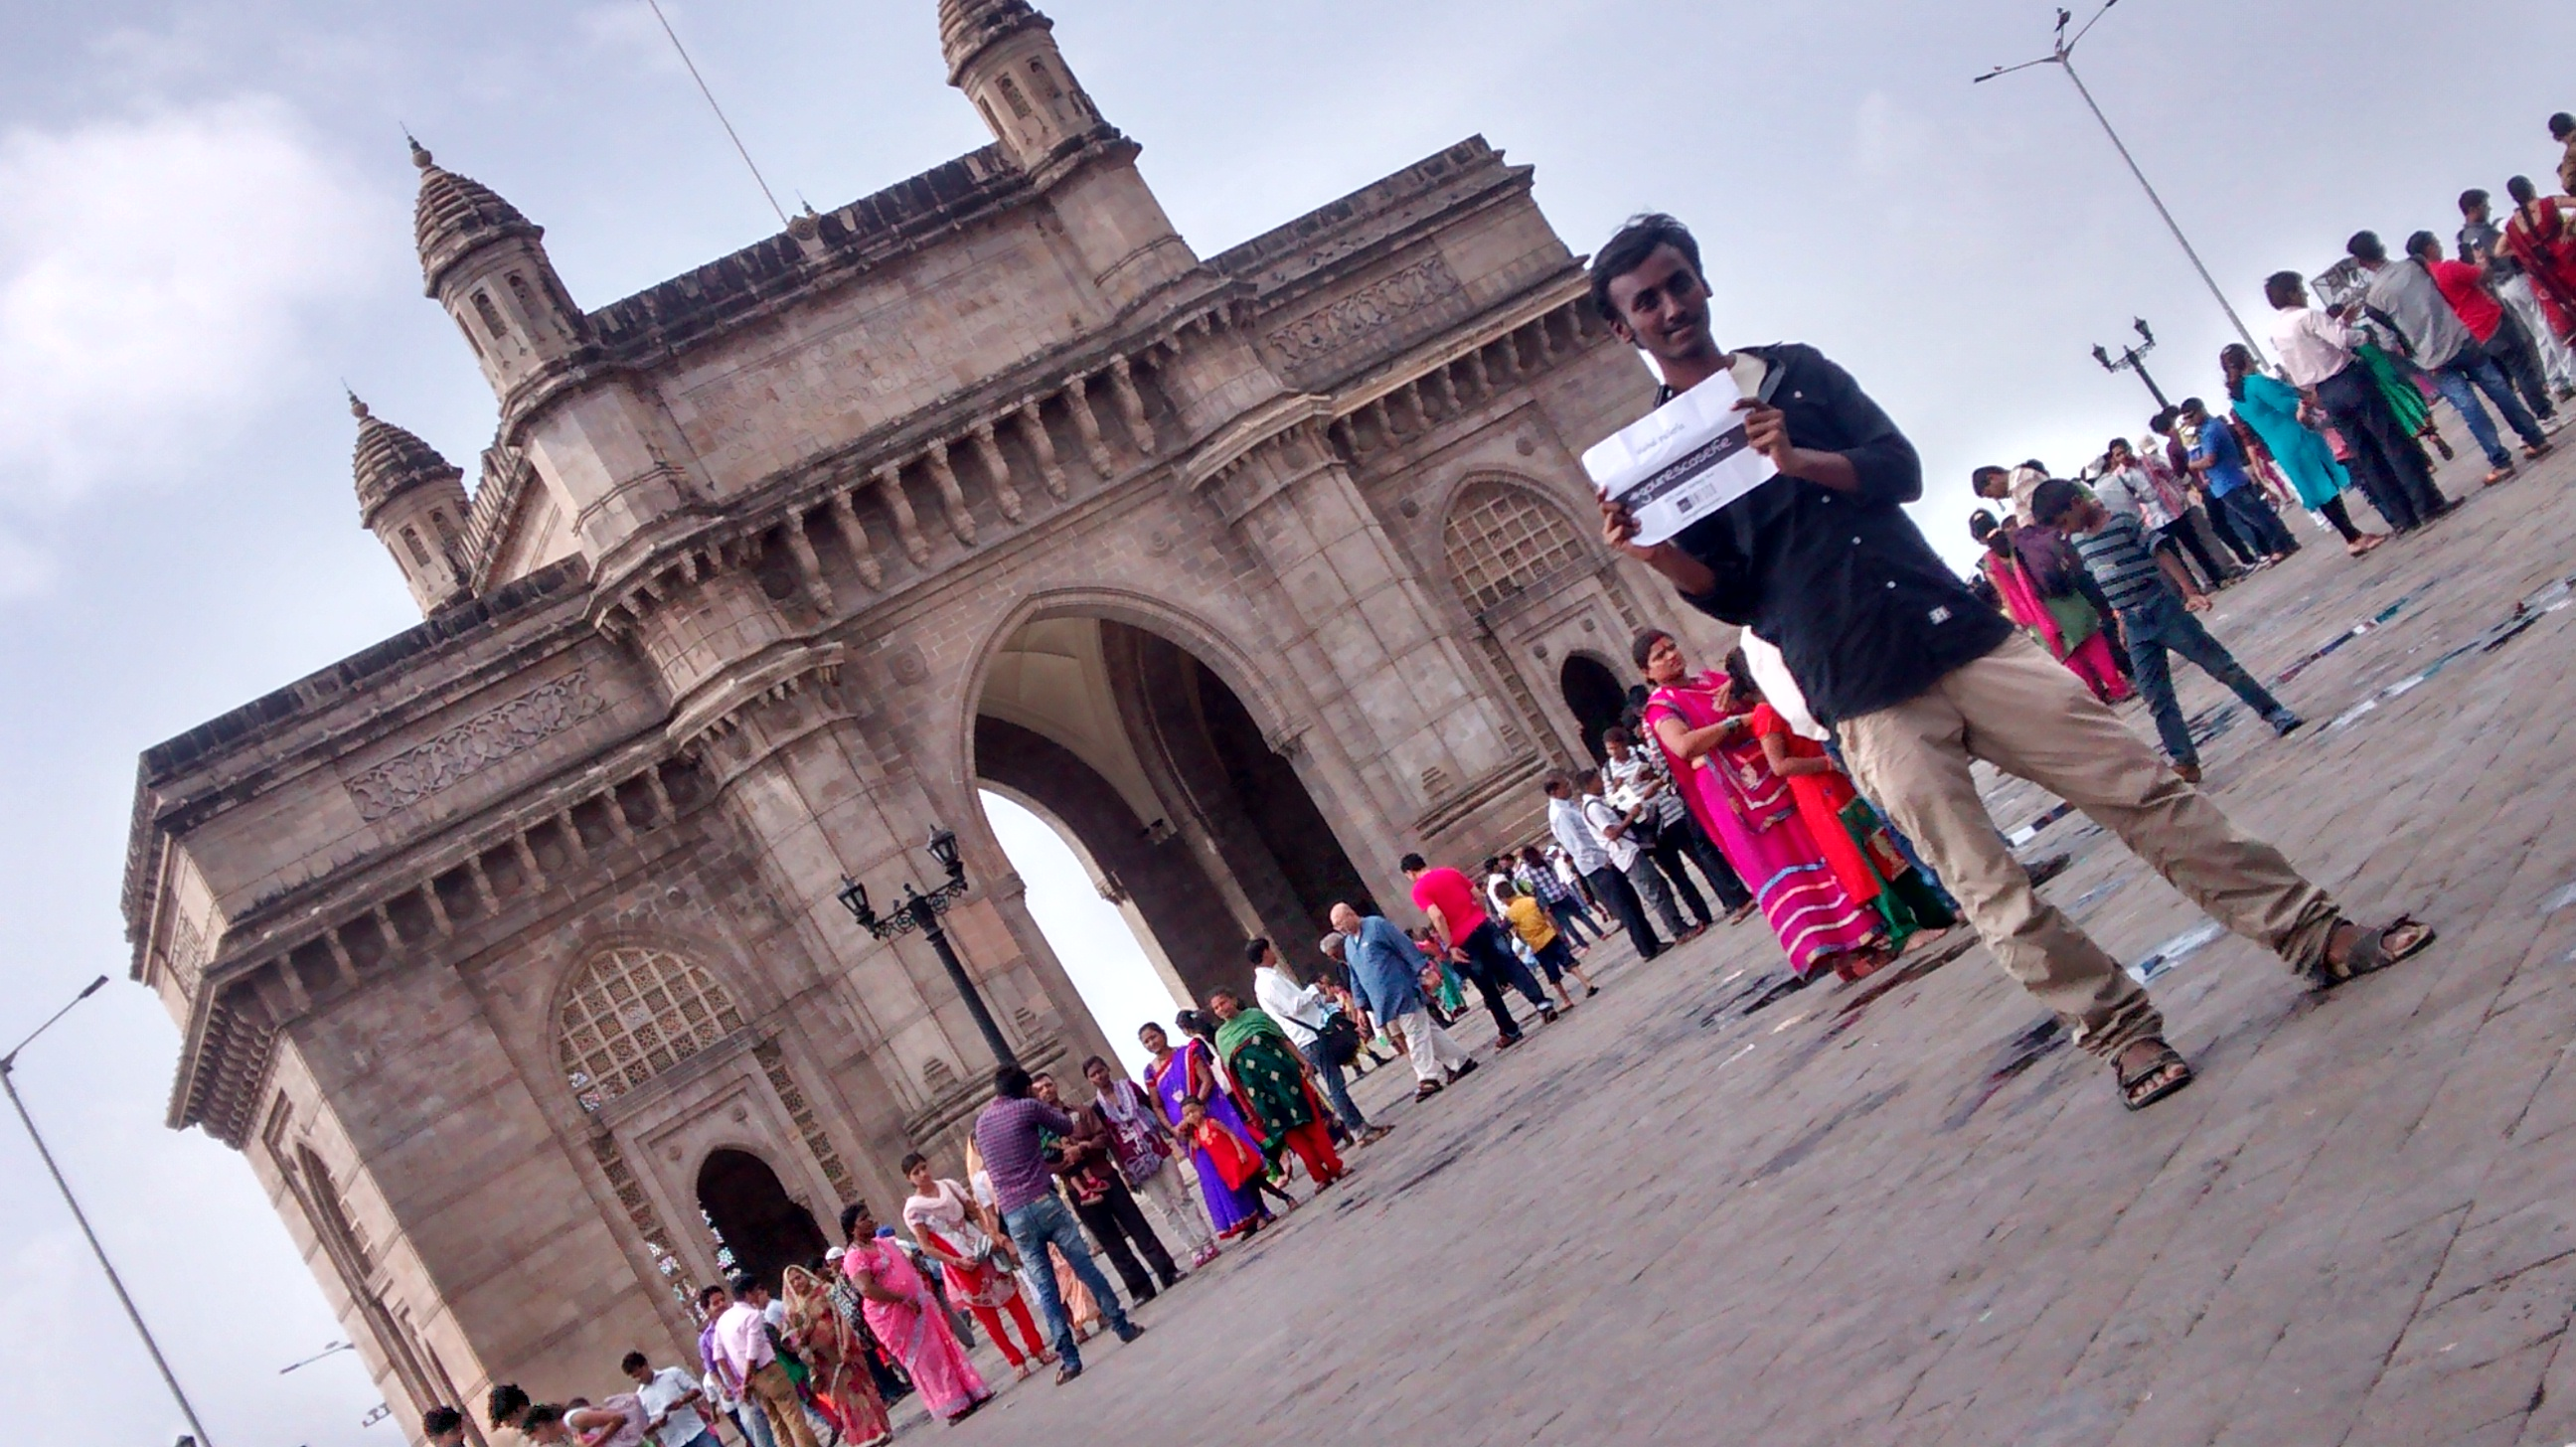 GateWay of india ‪#‎gounescoselfie‬ ‪#‎gatewayofIndia‬